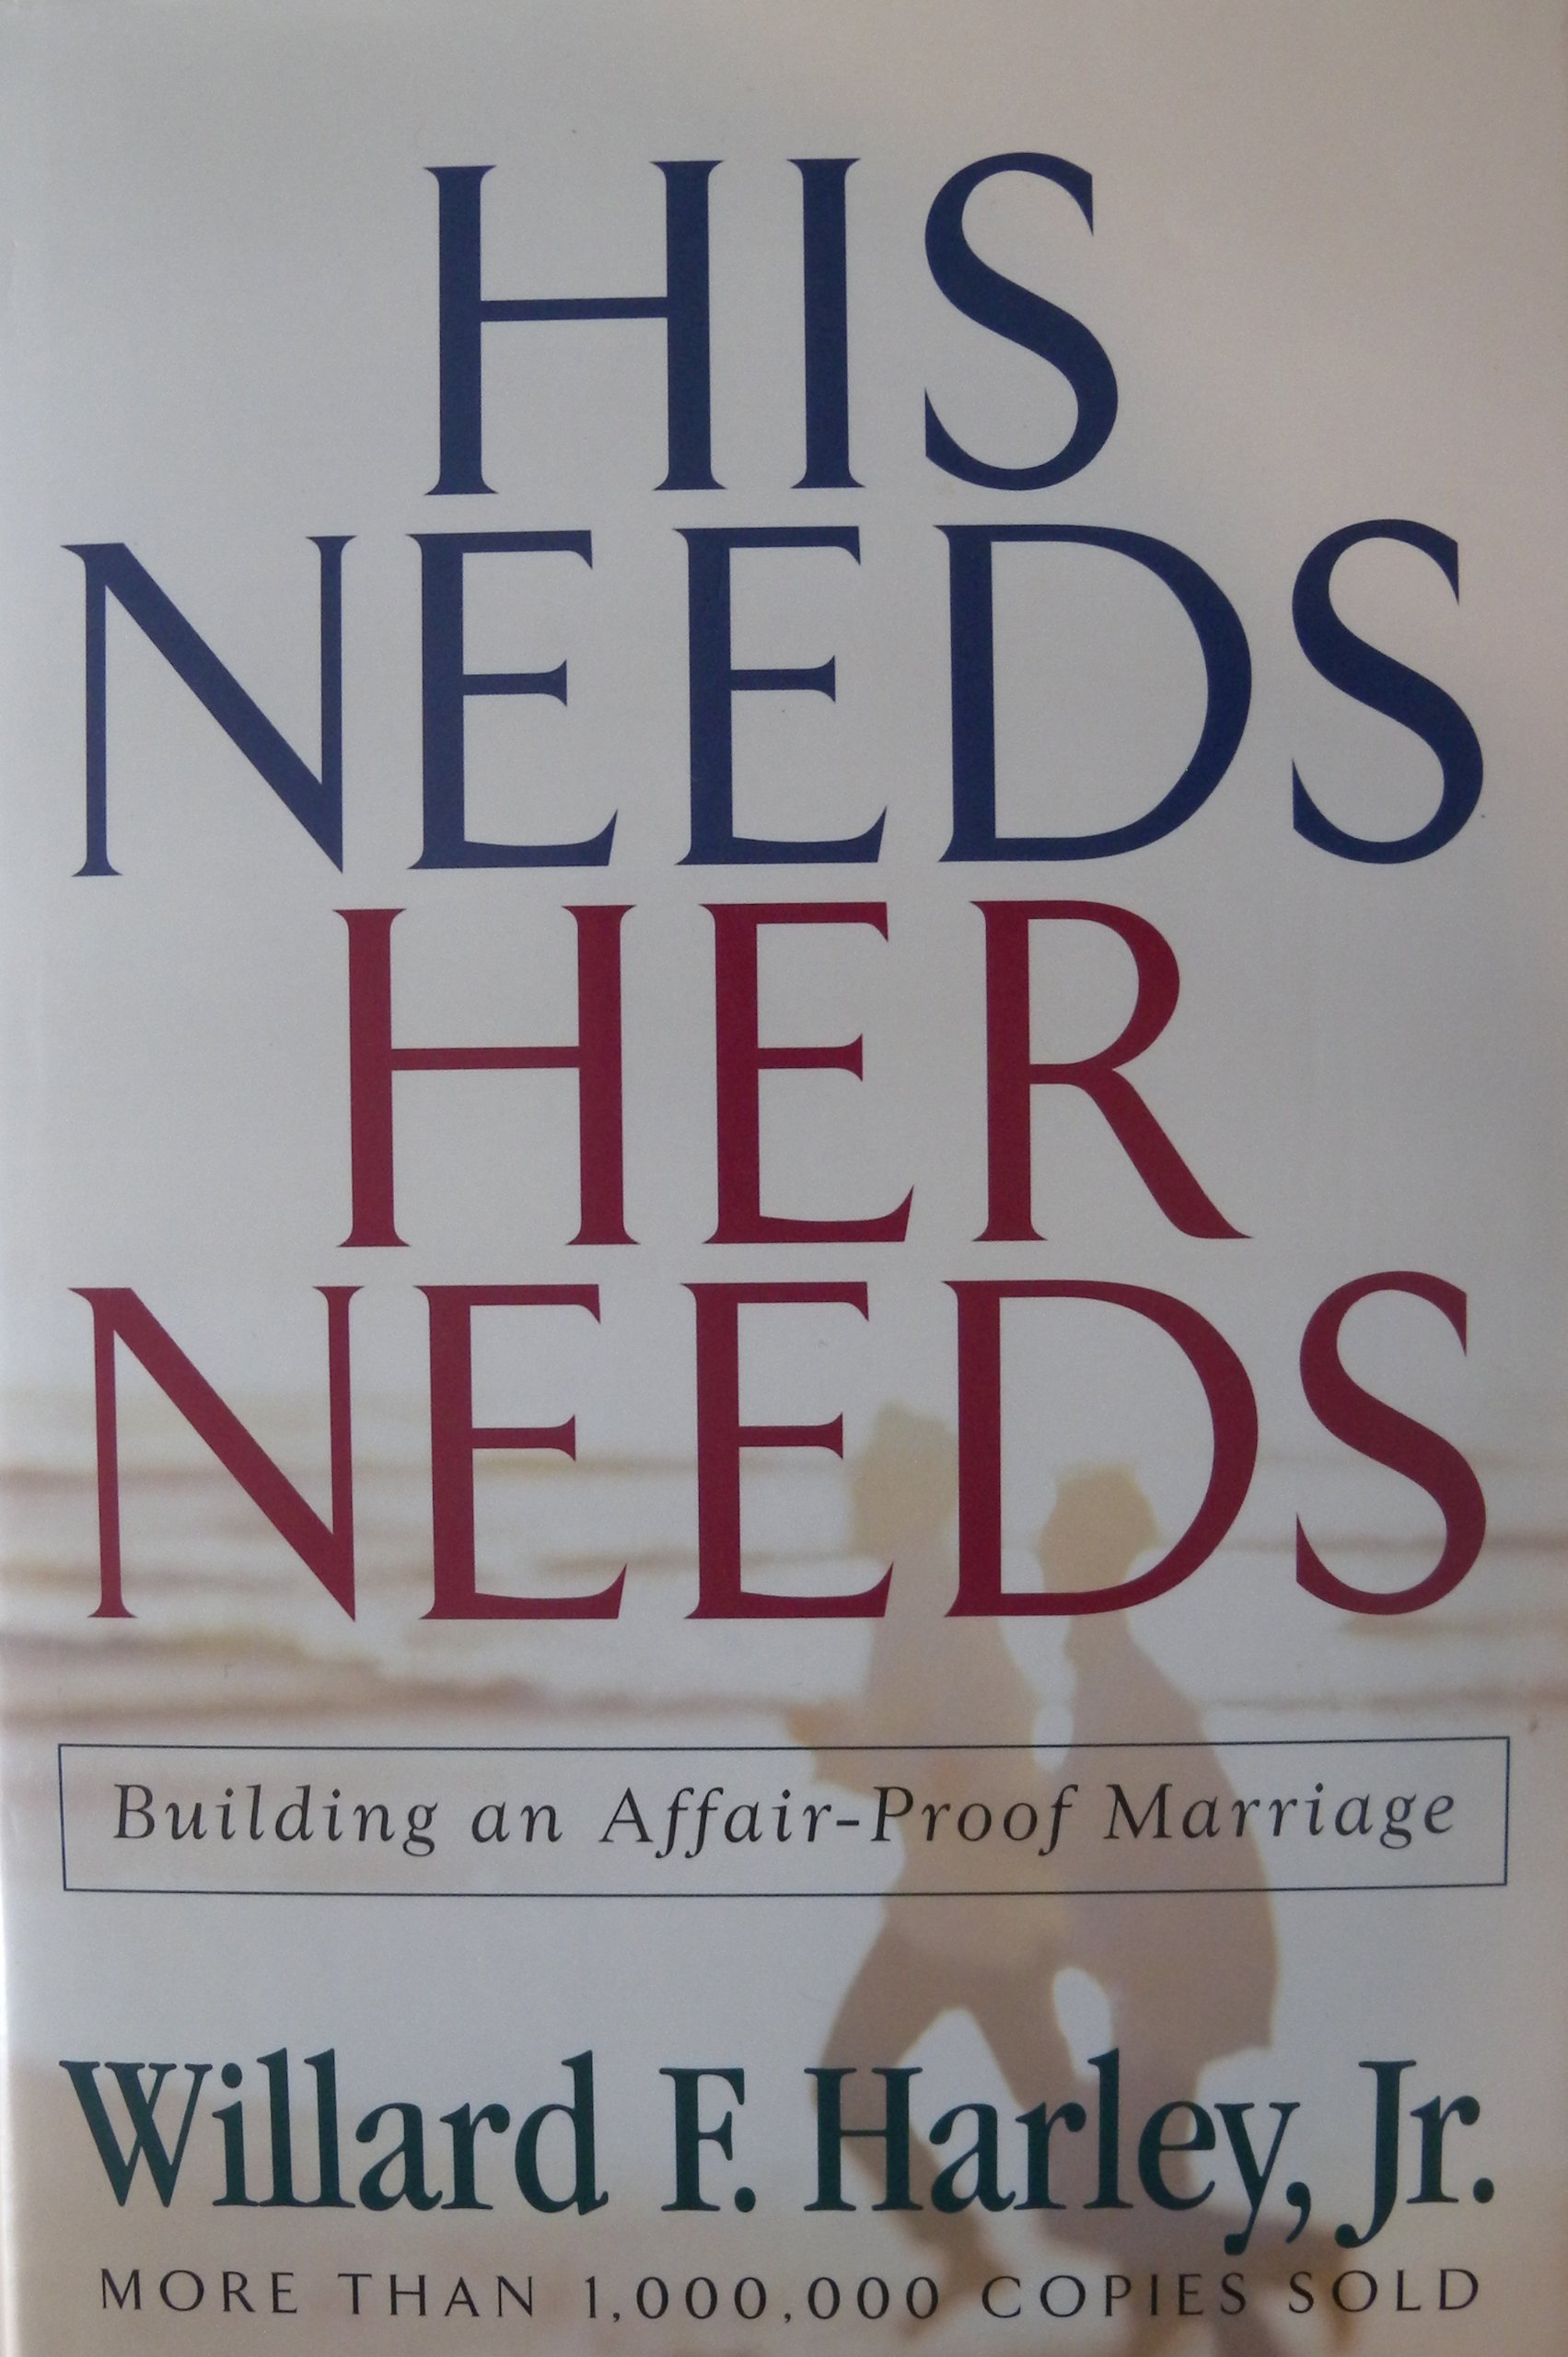 His Needs Her Needs, Building an Affair-Proof